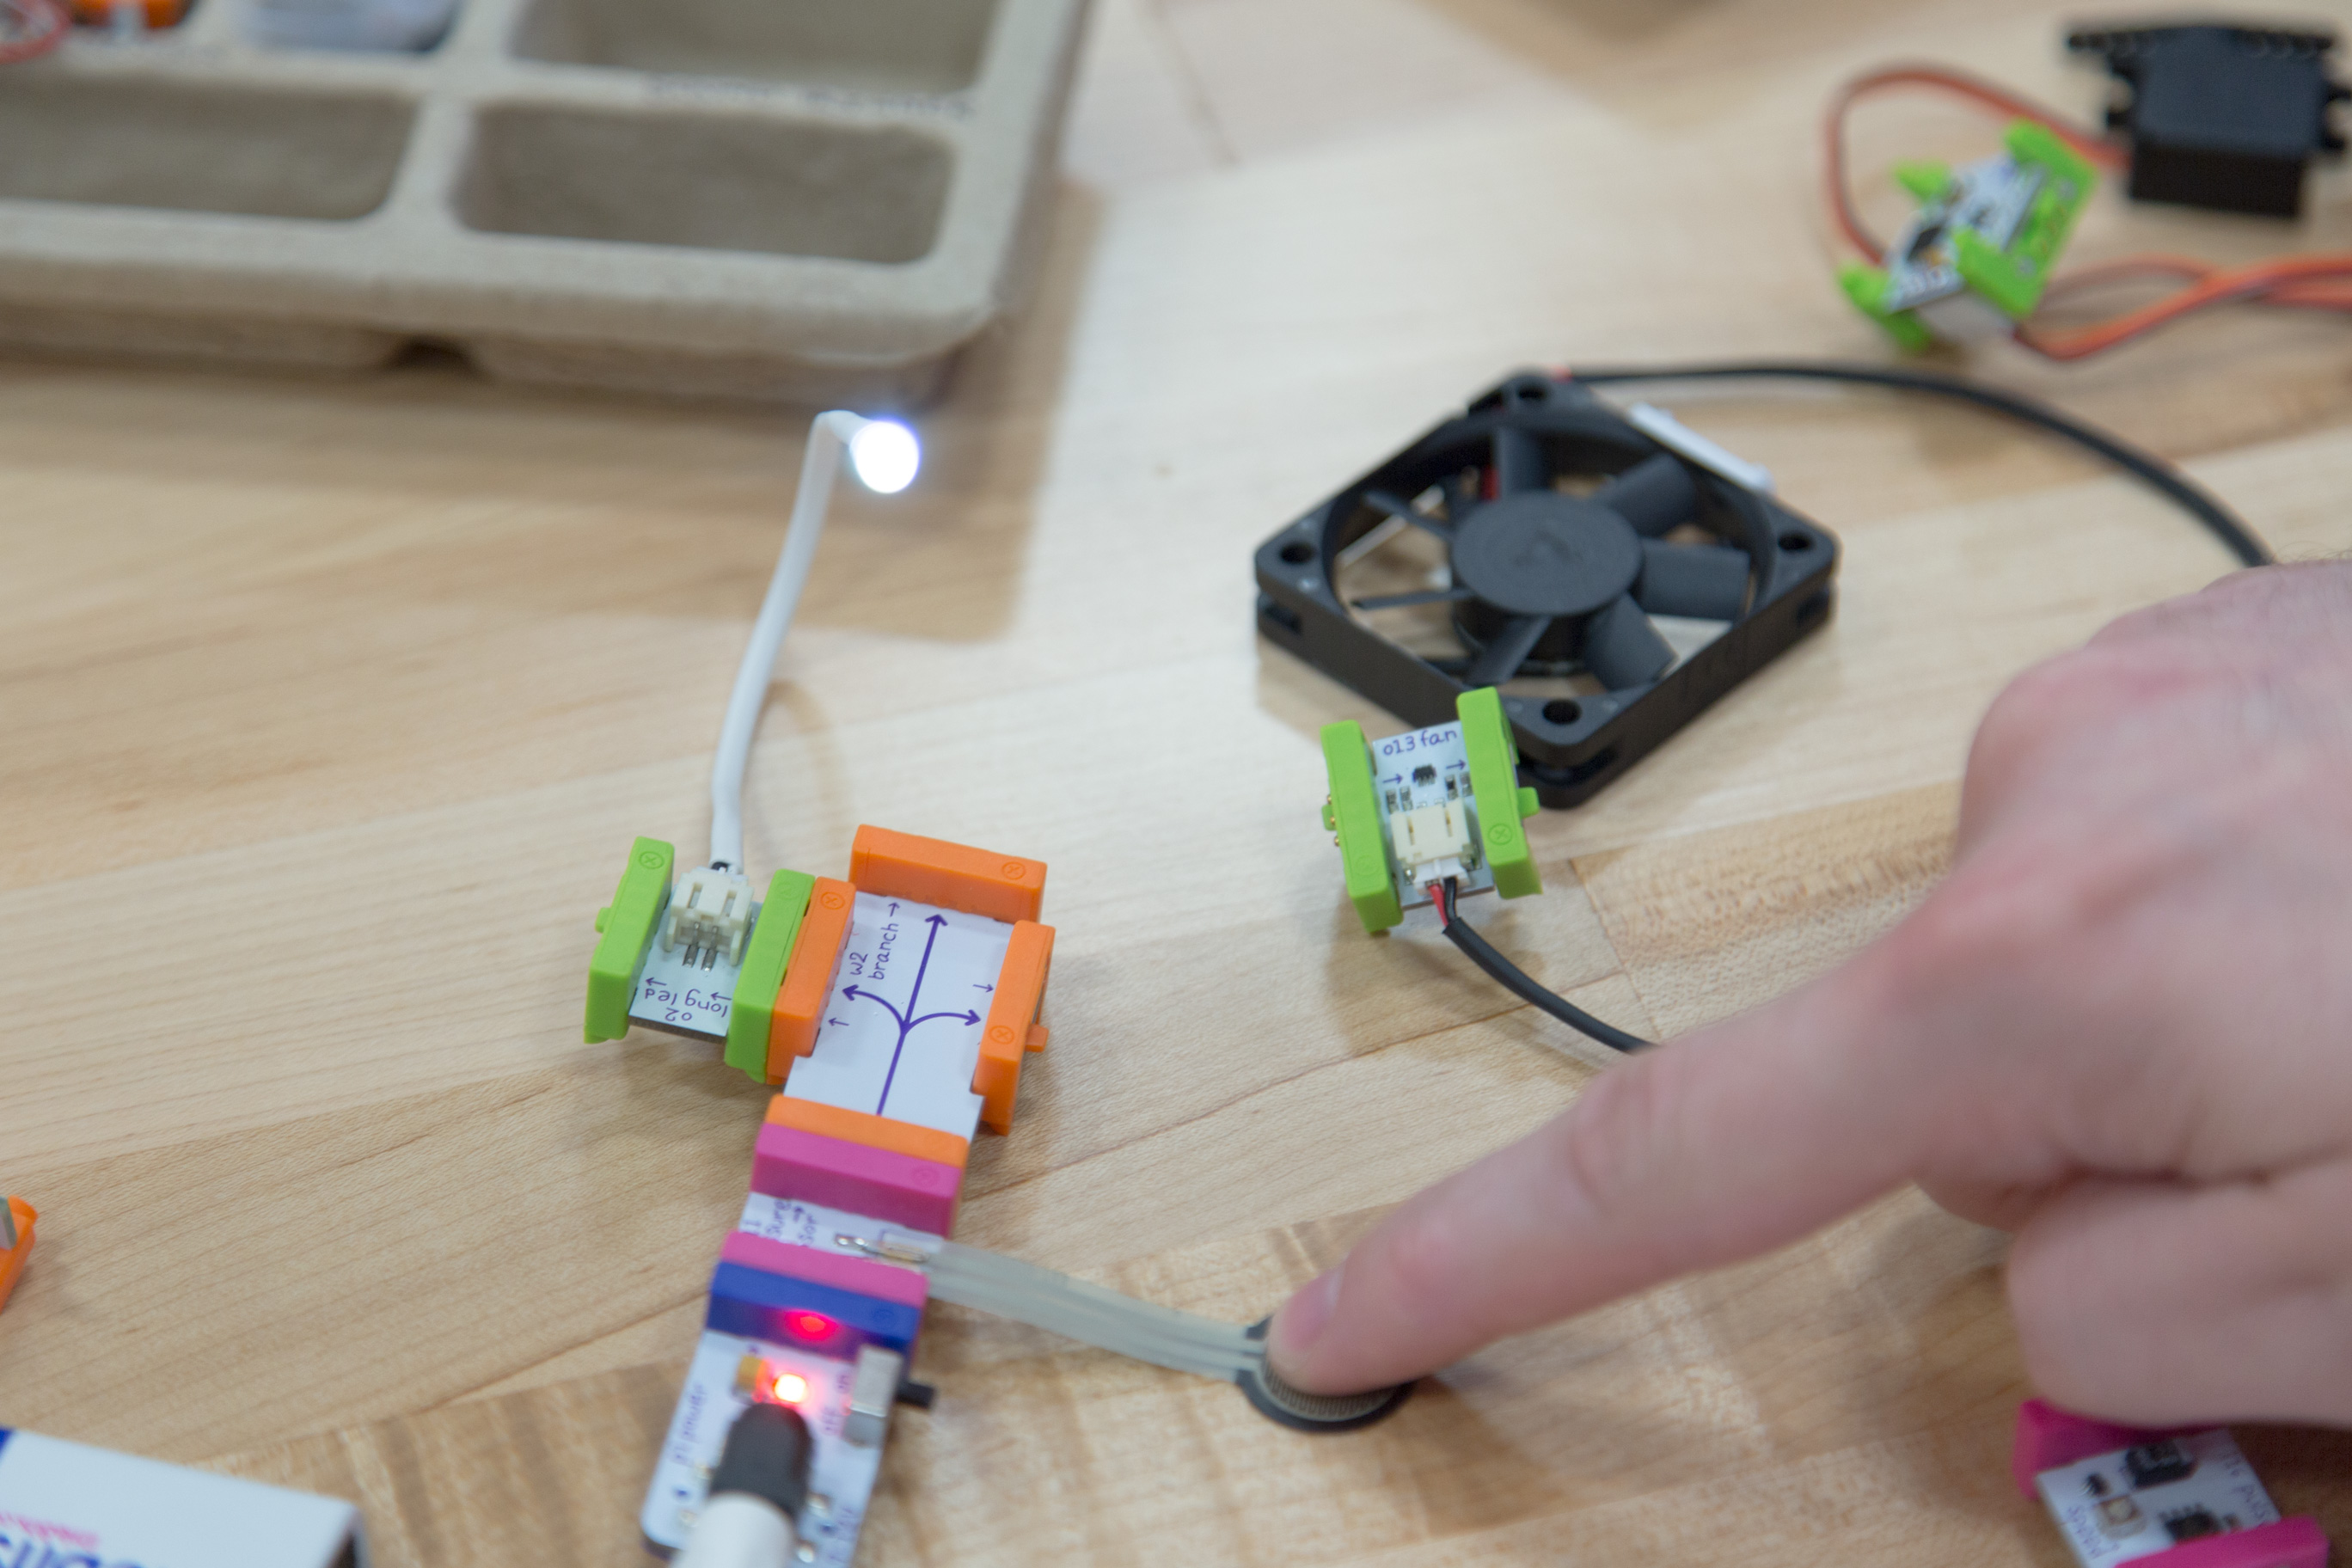 A student tests a circuit and explores modes of interactivity.